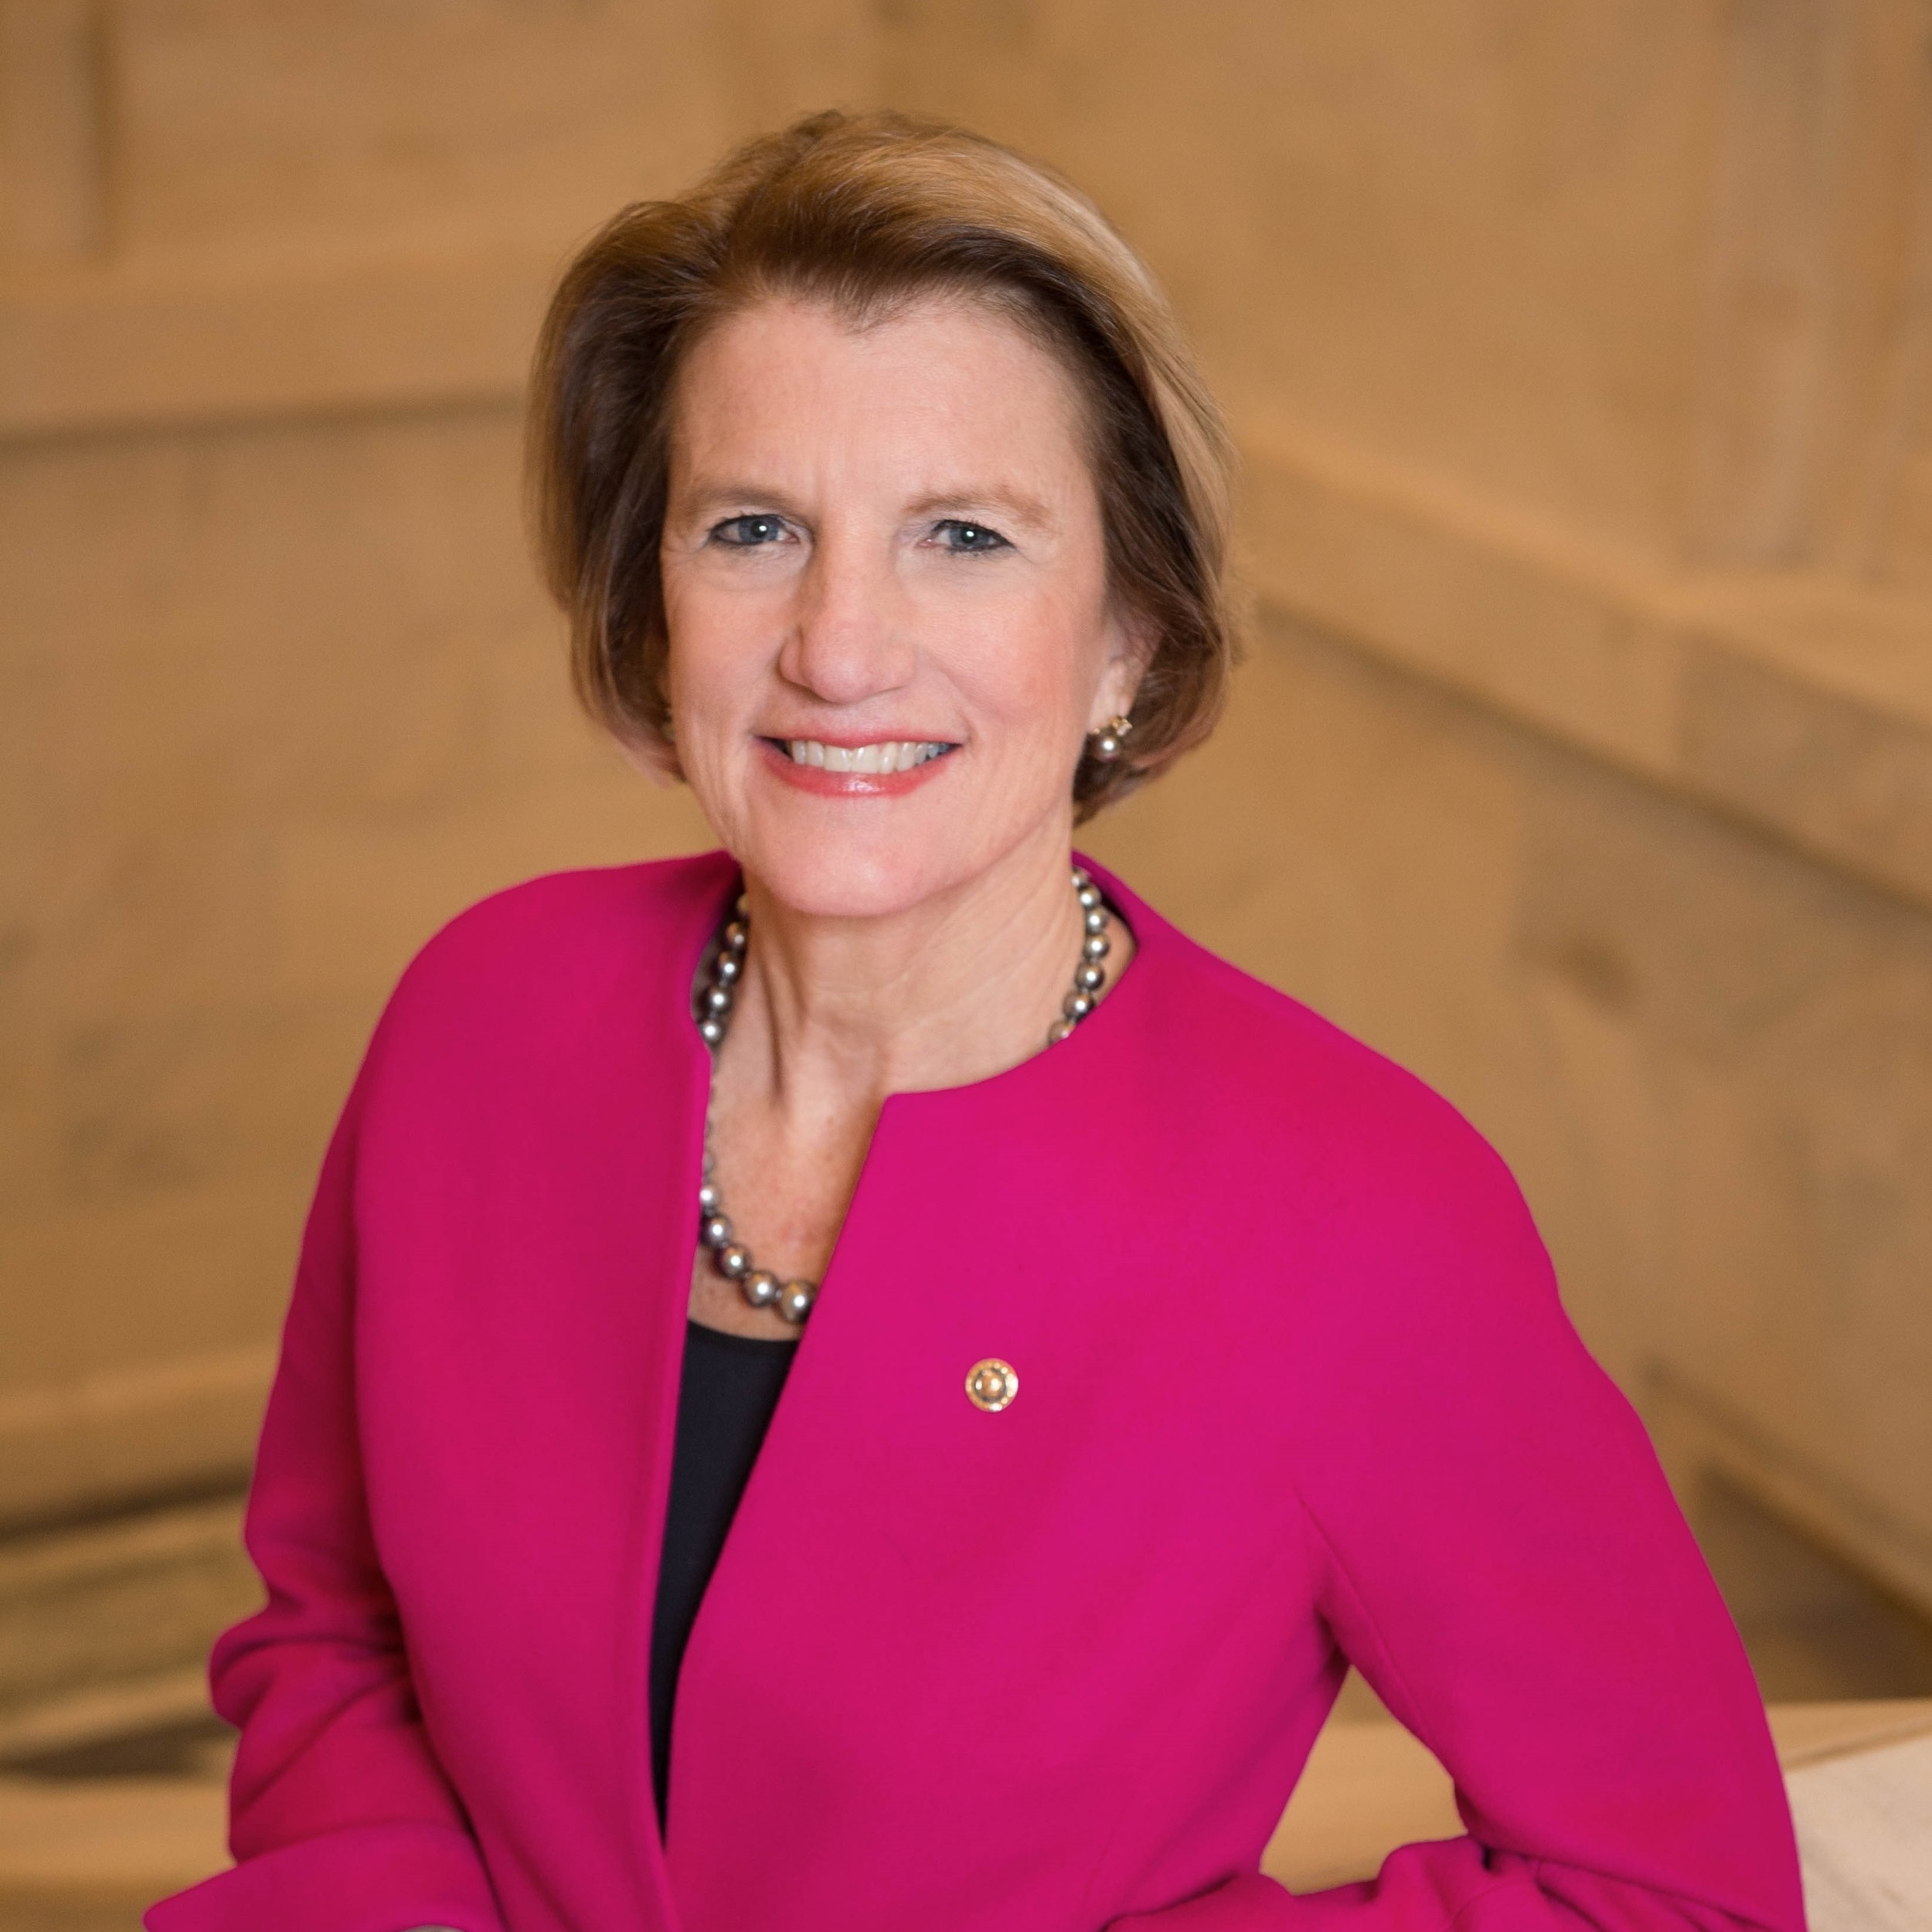 The Honorable Shelley Moore Capito - U.S. Senator, West virginia (UVA Curry '76)